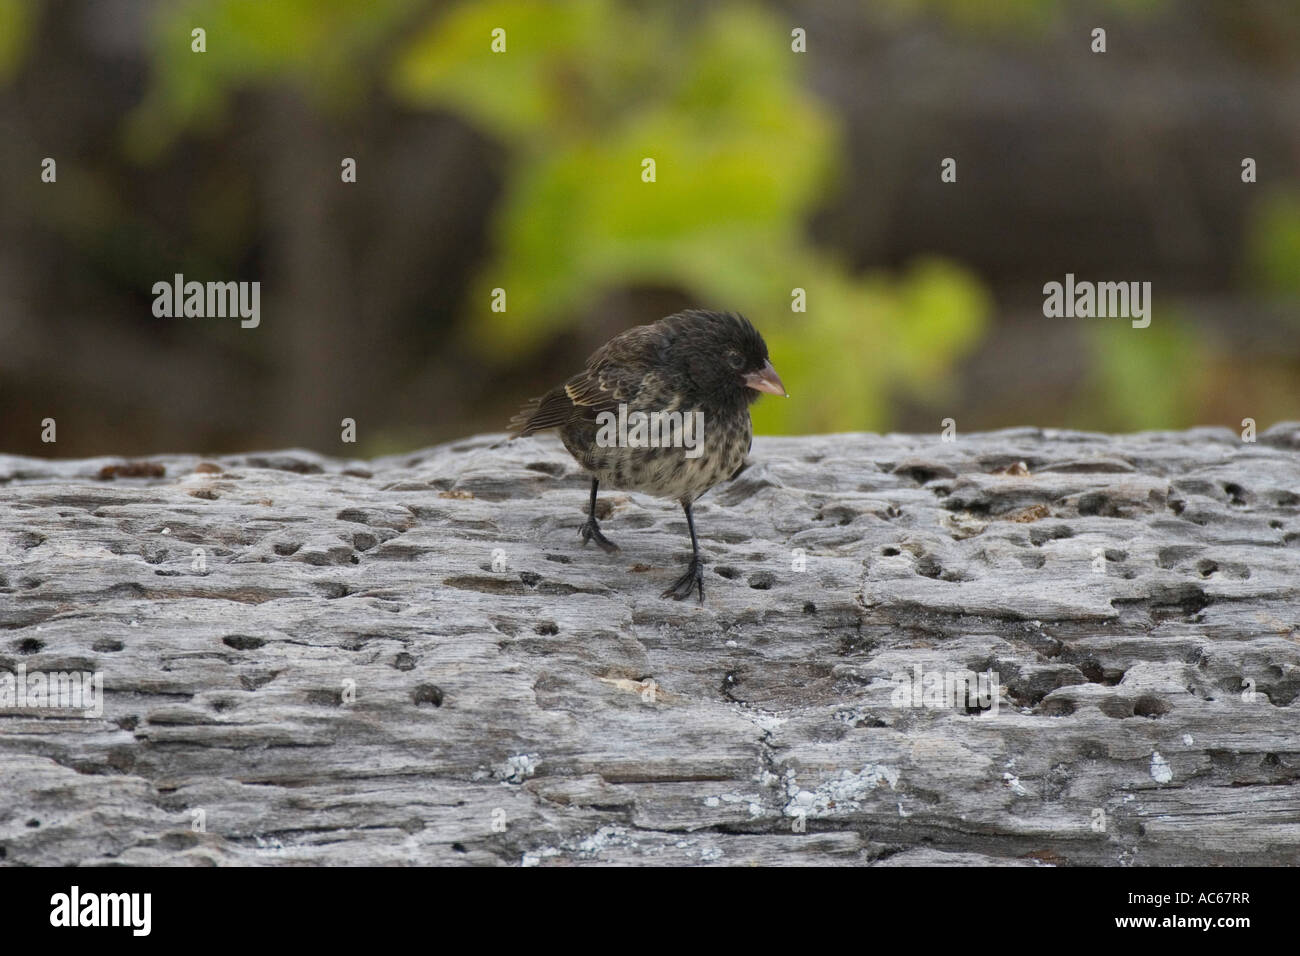 Large Cactus ground finch on Espanola in the Galapagos Islands - Stock Image